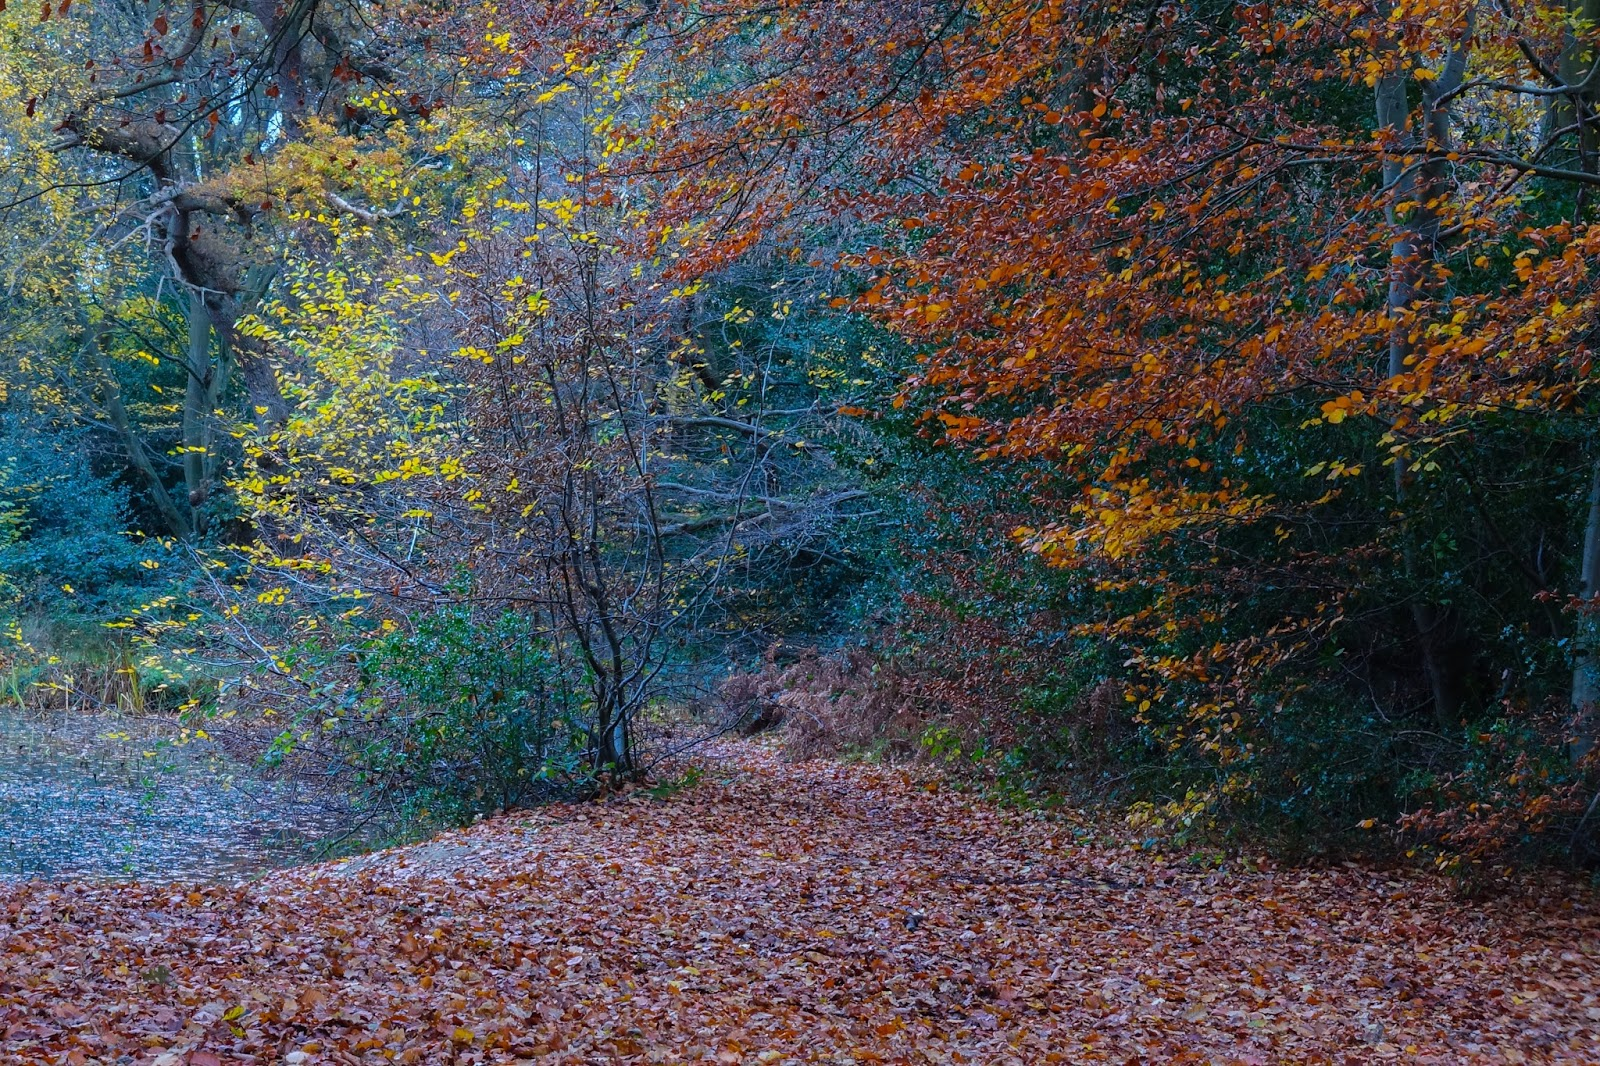 A path covered in brown leaves, the edge of a lake and trees in different shades of yellow, orange and brown